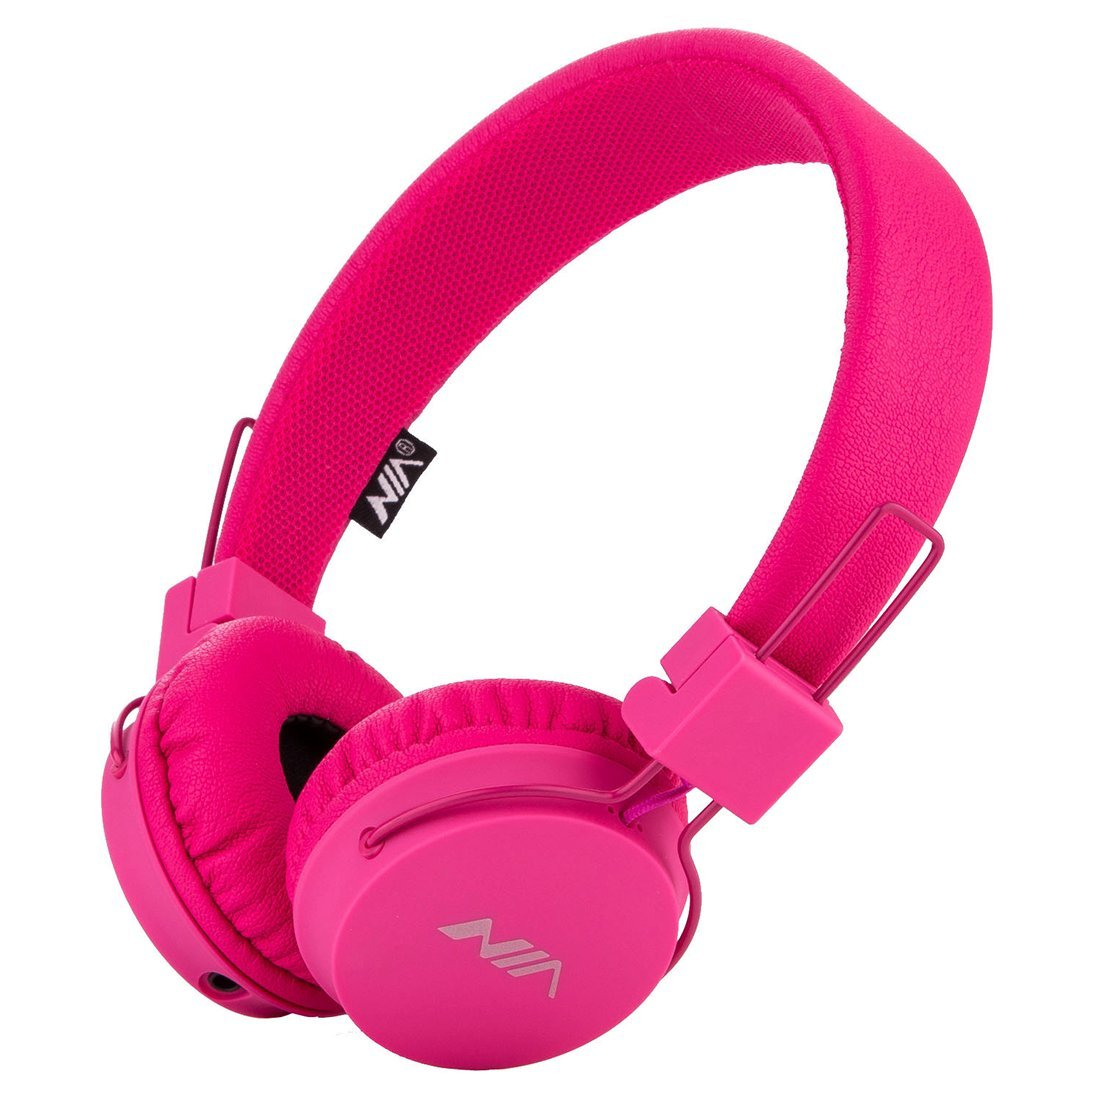 SODEE Folding Stereo Wired Headphones For Kids,Girls Headphones,Boys Headphone,In-line Microphone Remote Control Adjustable Over ear Headphone Kids Headsets with Soft Earpads for Cellphones(Pink)